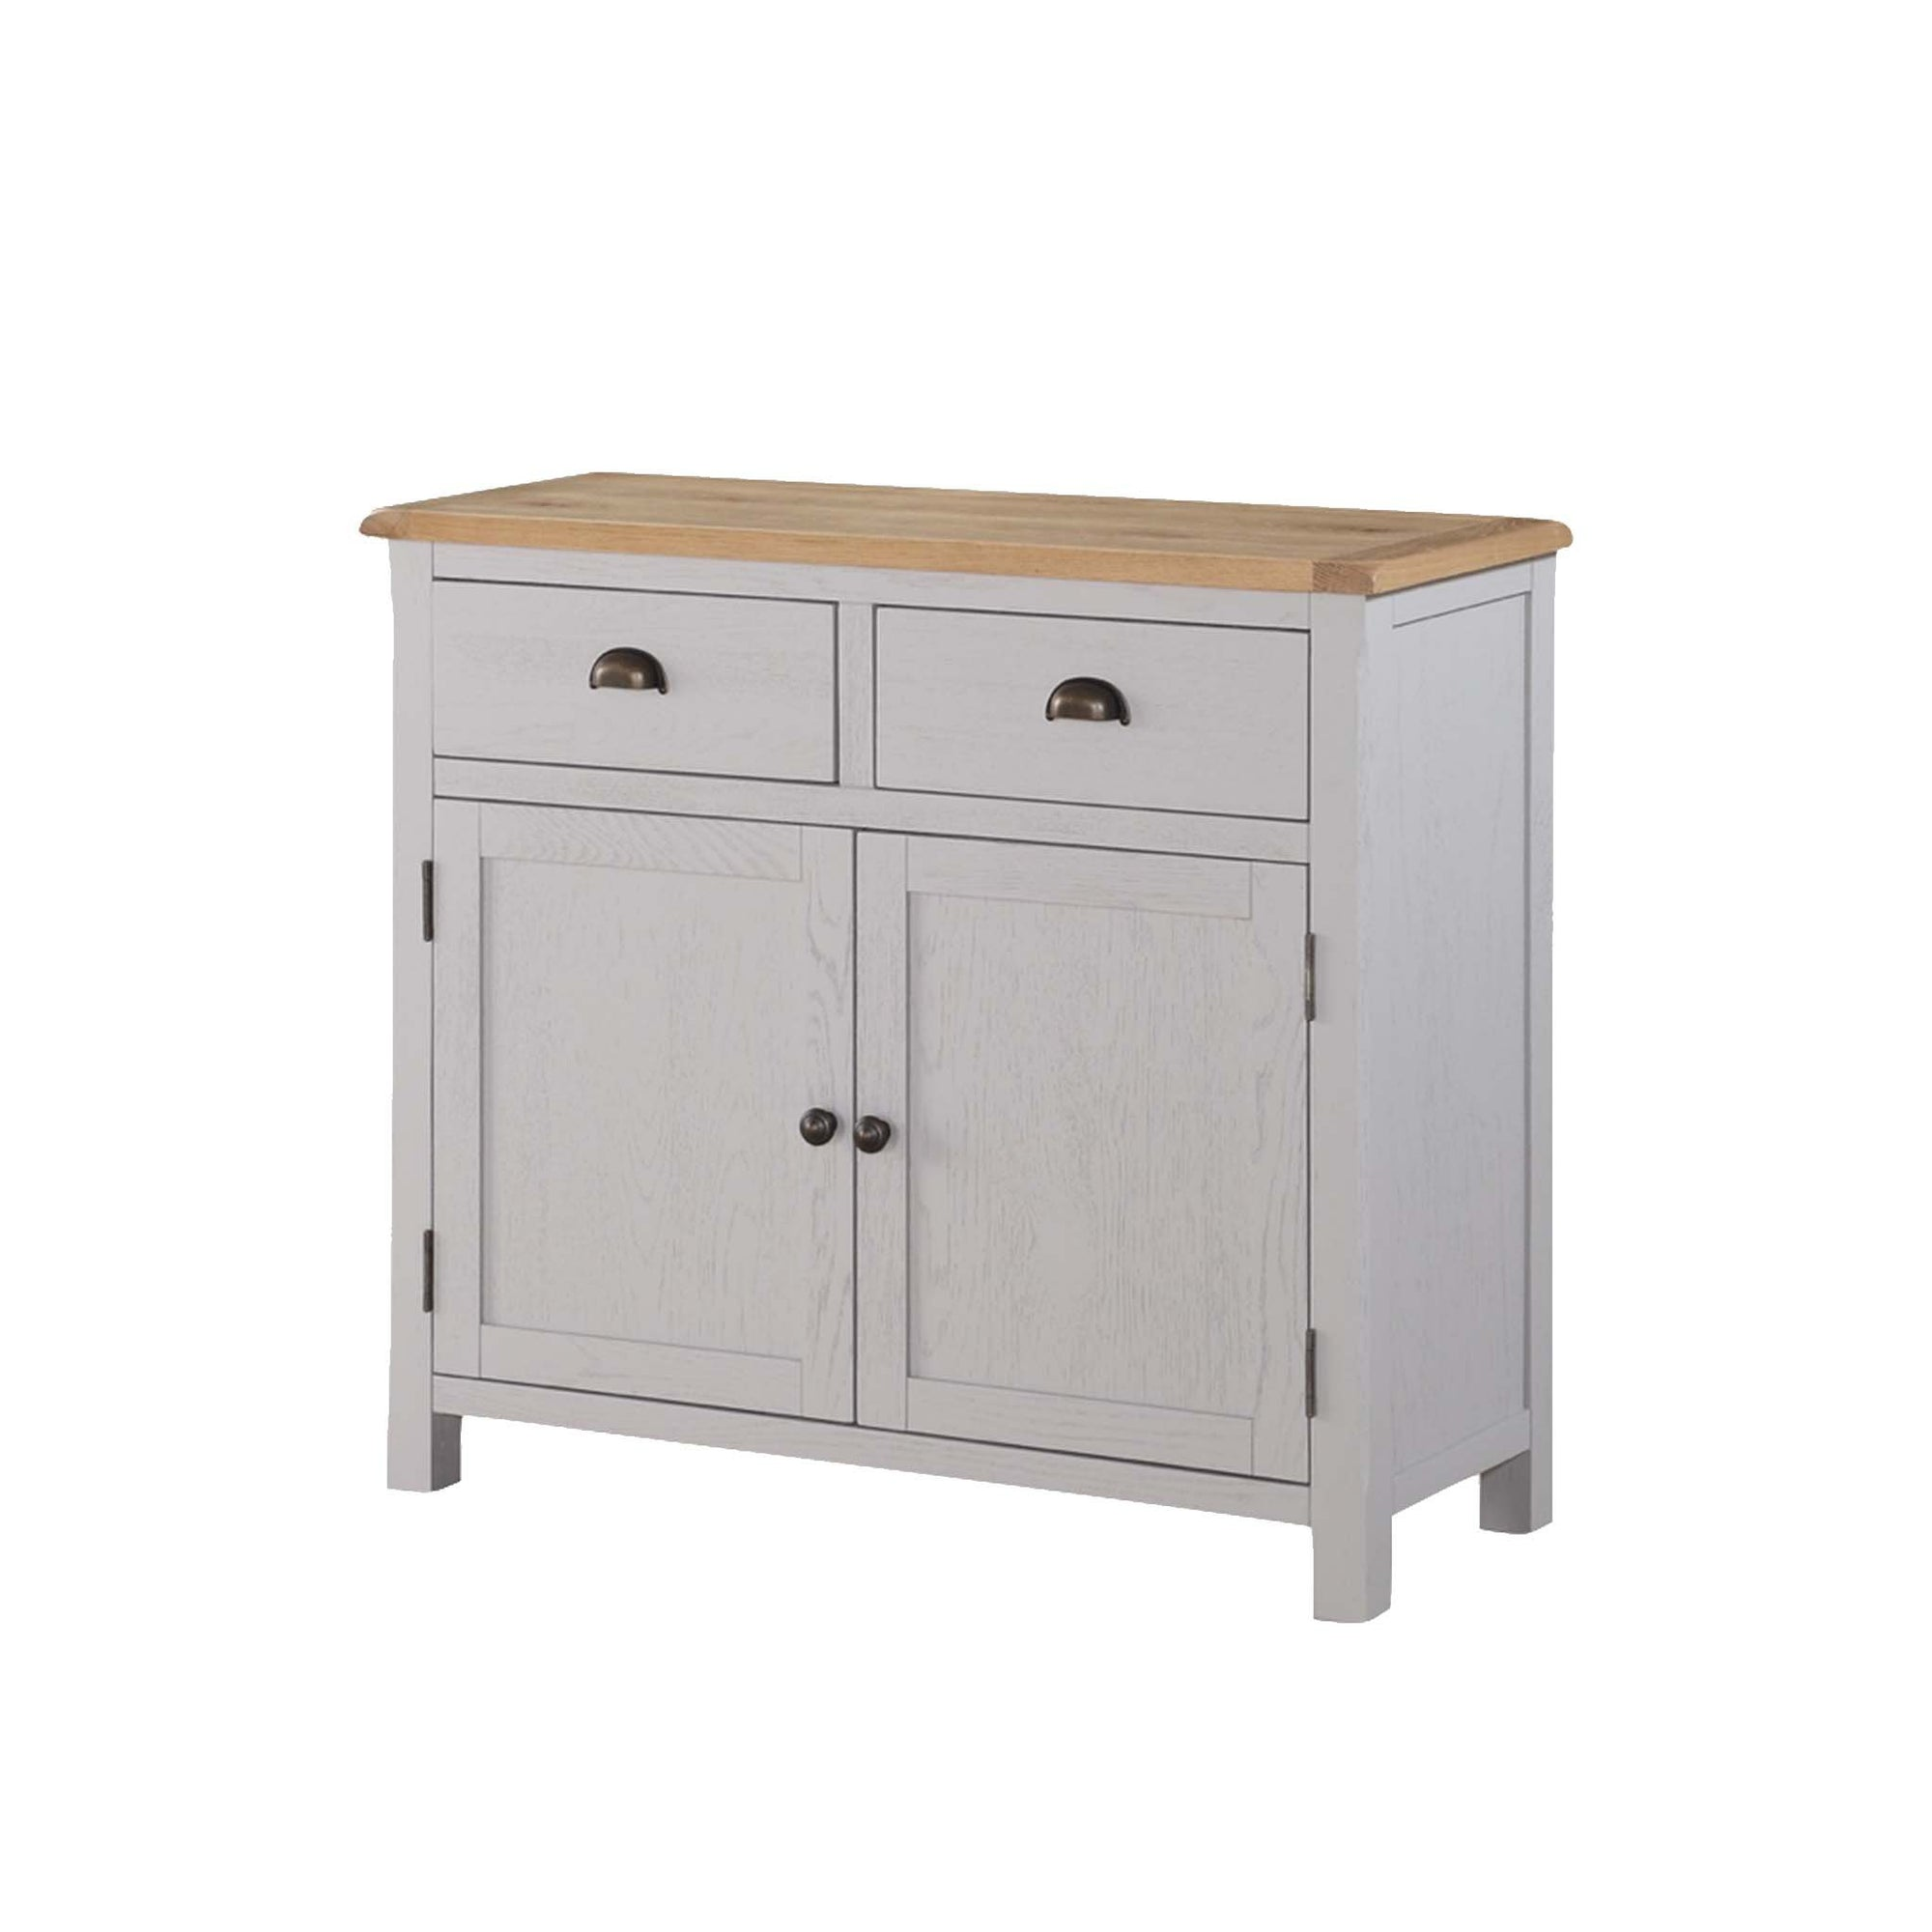 Kilmore Painted 2 Door Sideboard by Roseland Furniture